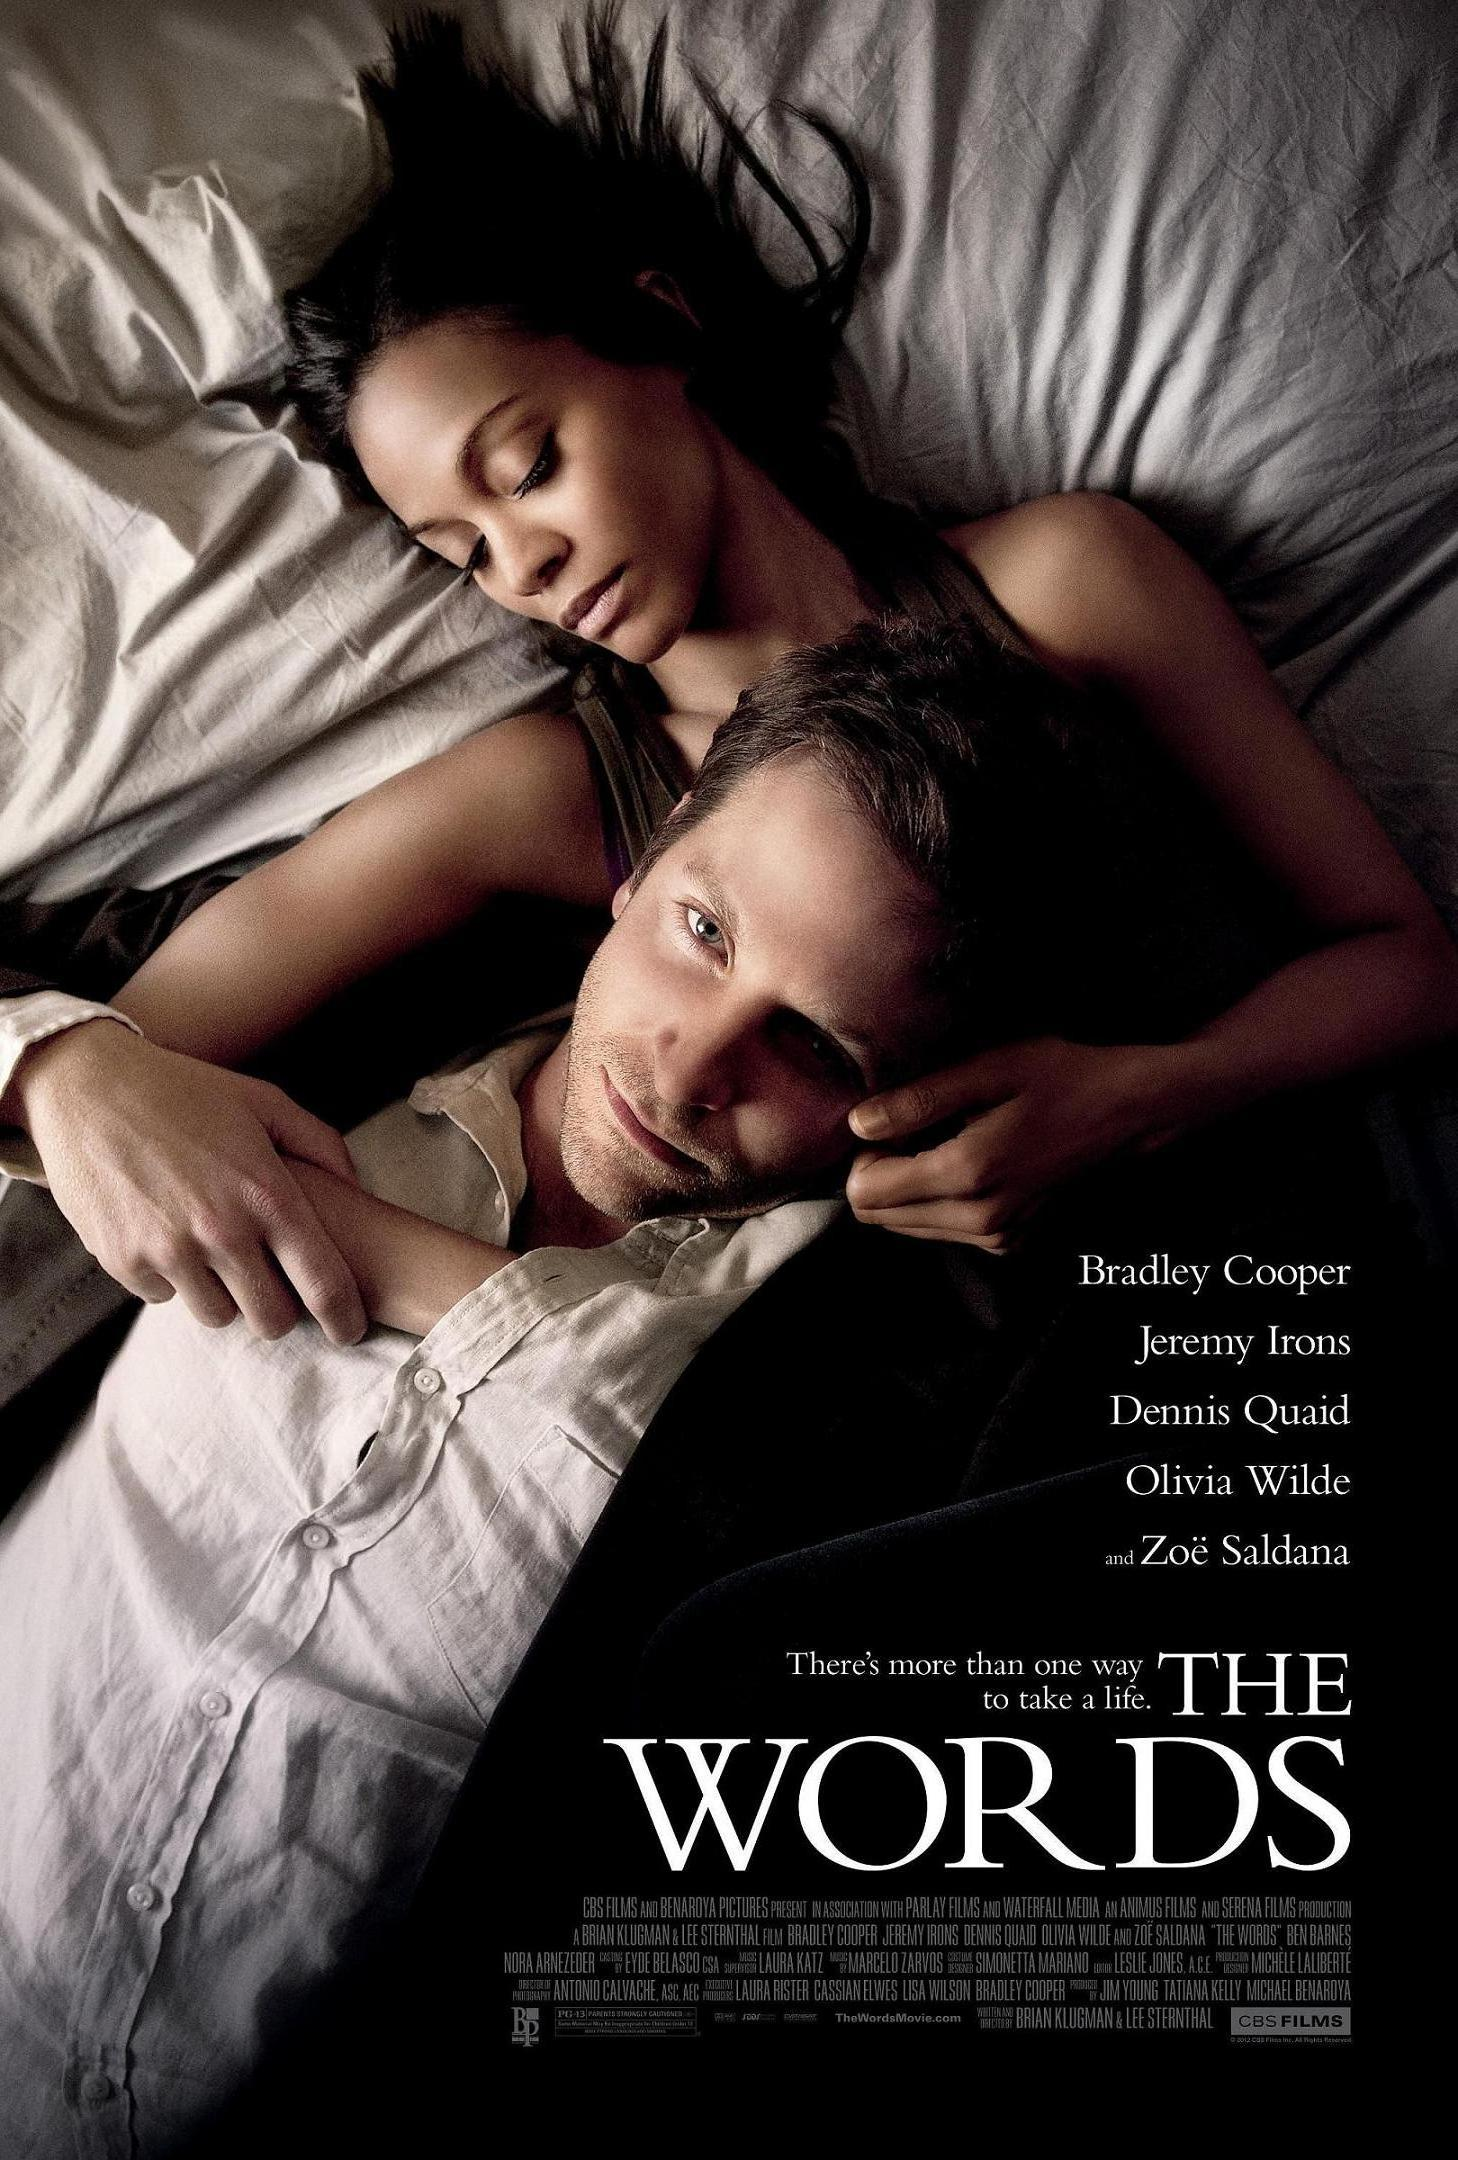 Poster du film The Words avec Bradley Cooper et Zoe Saldana